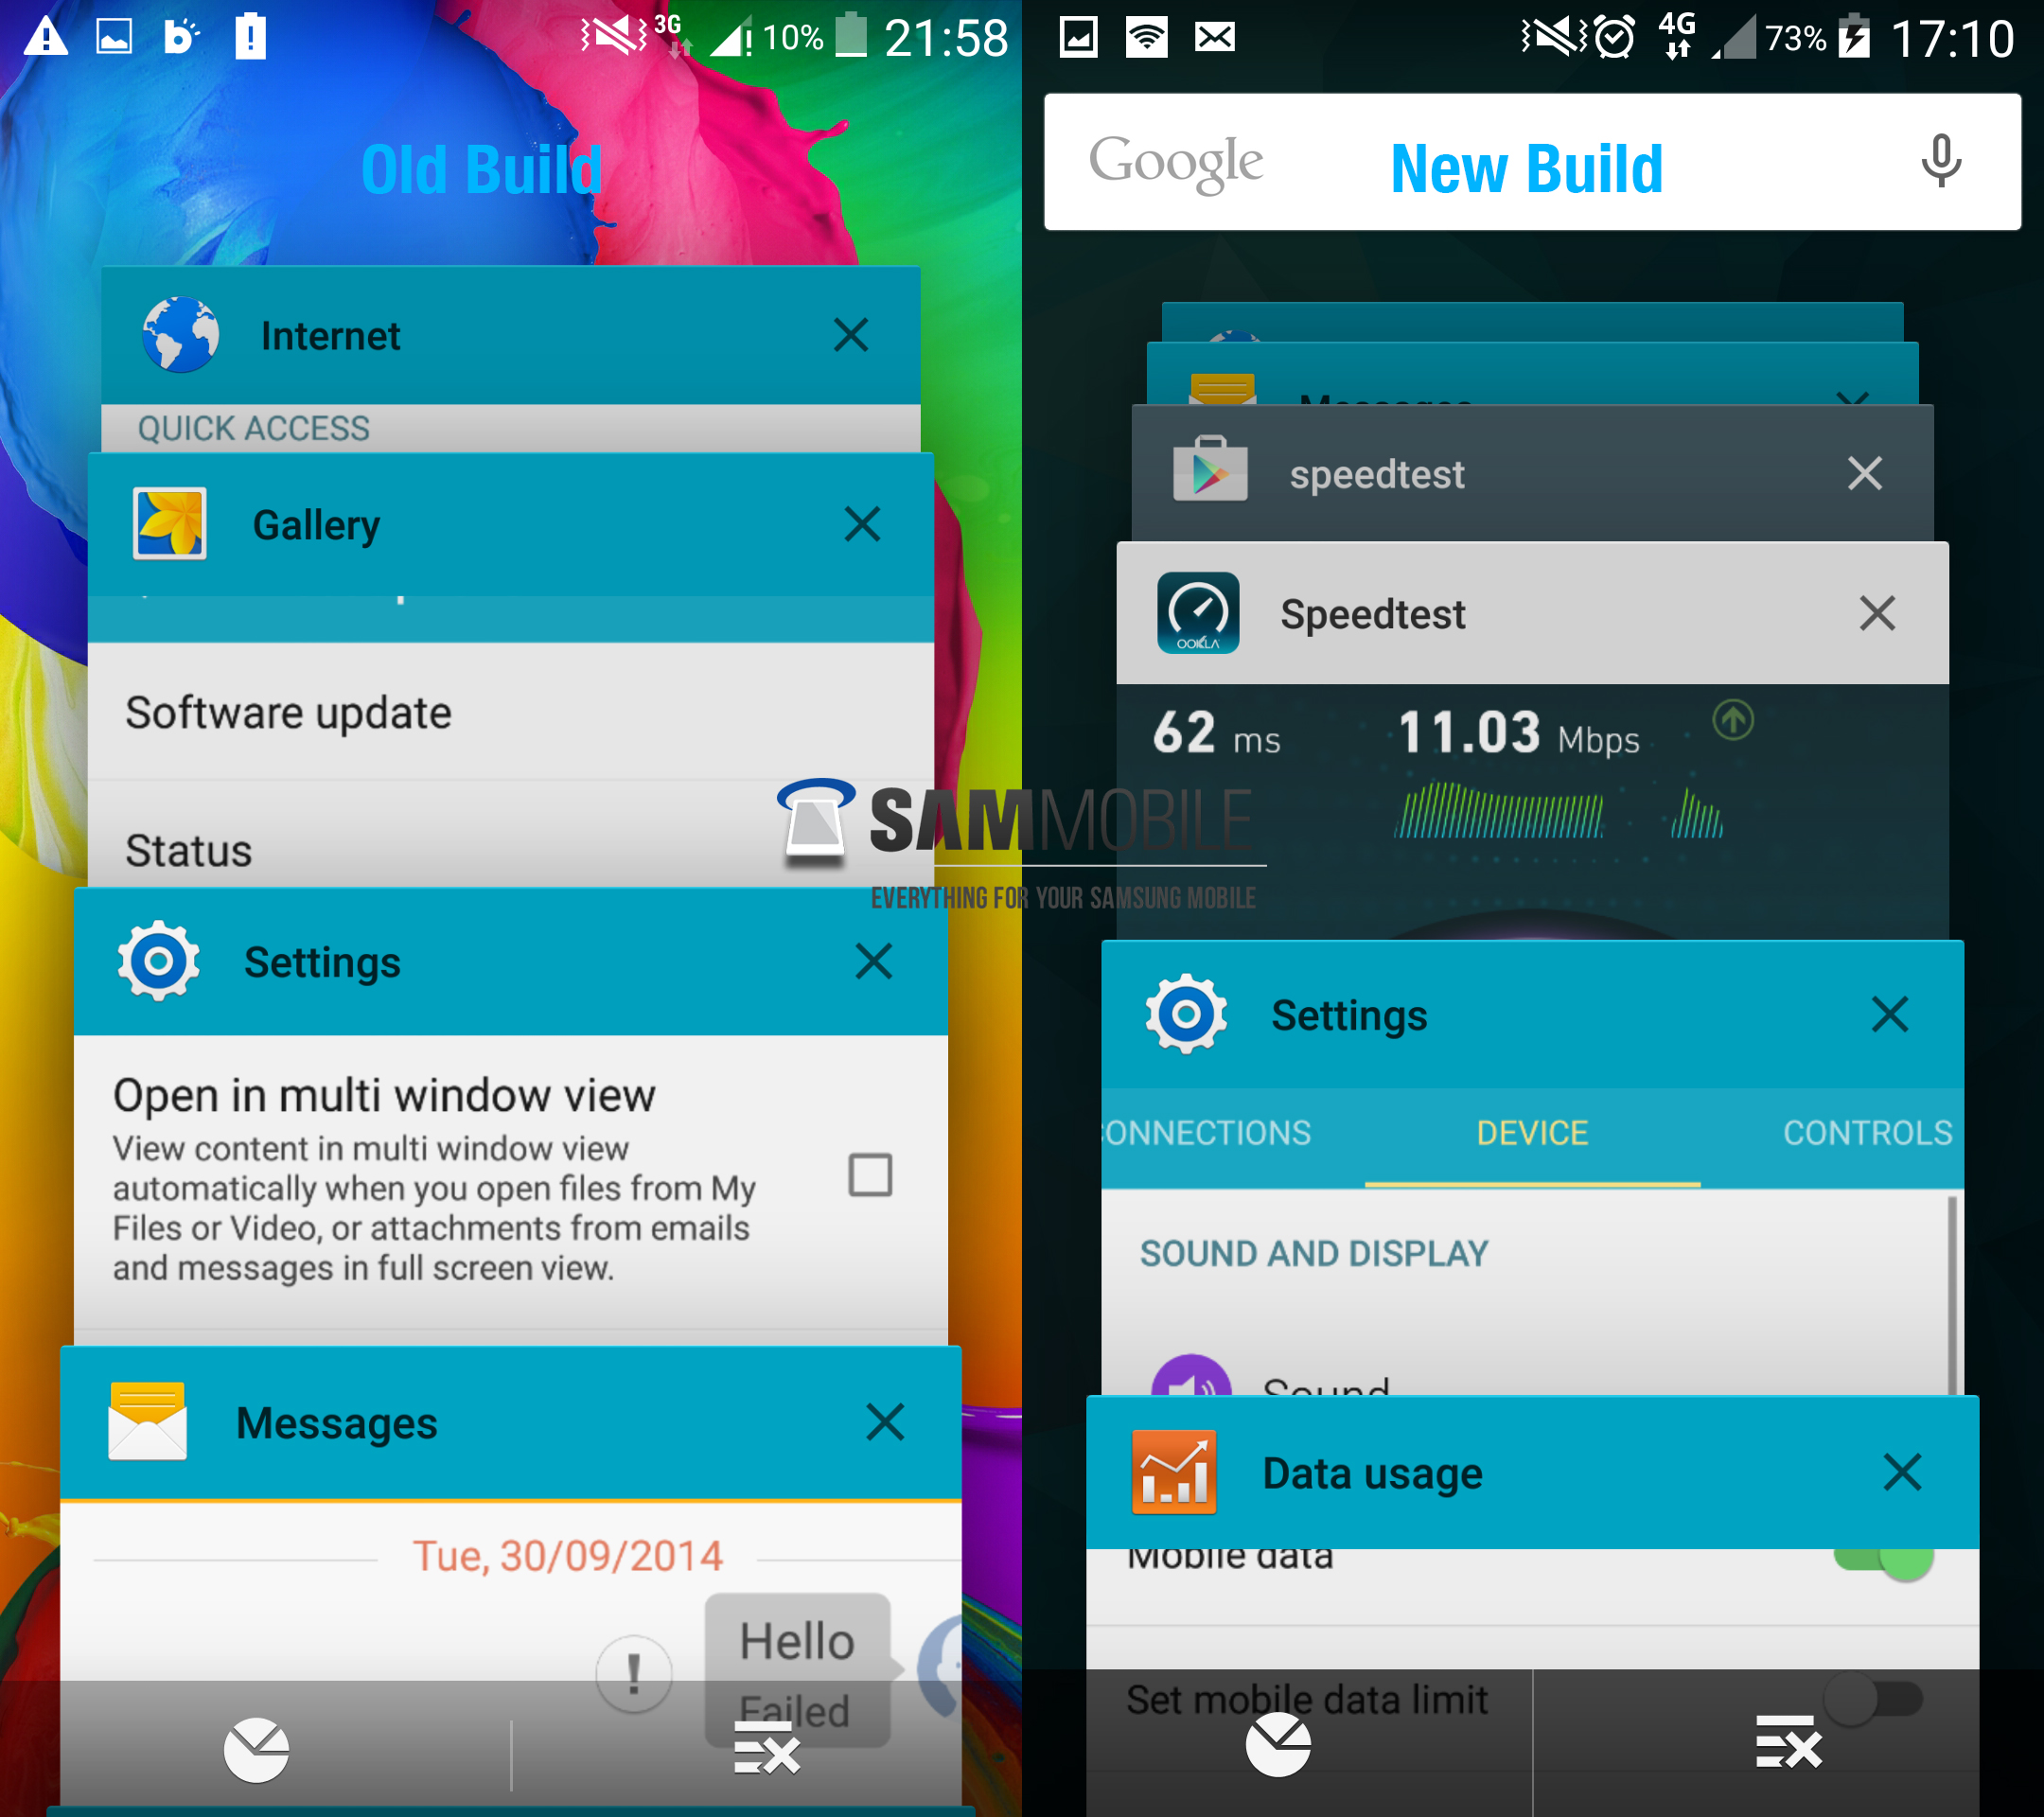 Exclusive: Samsung's progress with Android Lollipop update for the Galaxy S5 - SamMobile